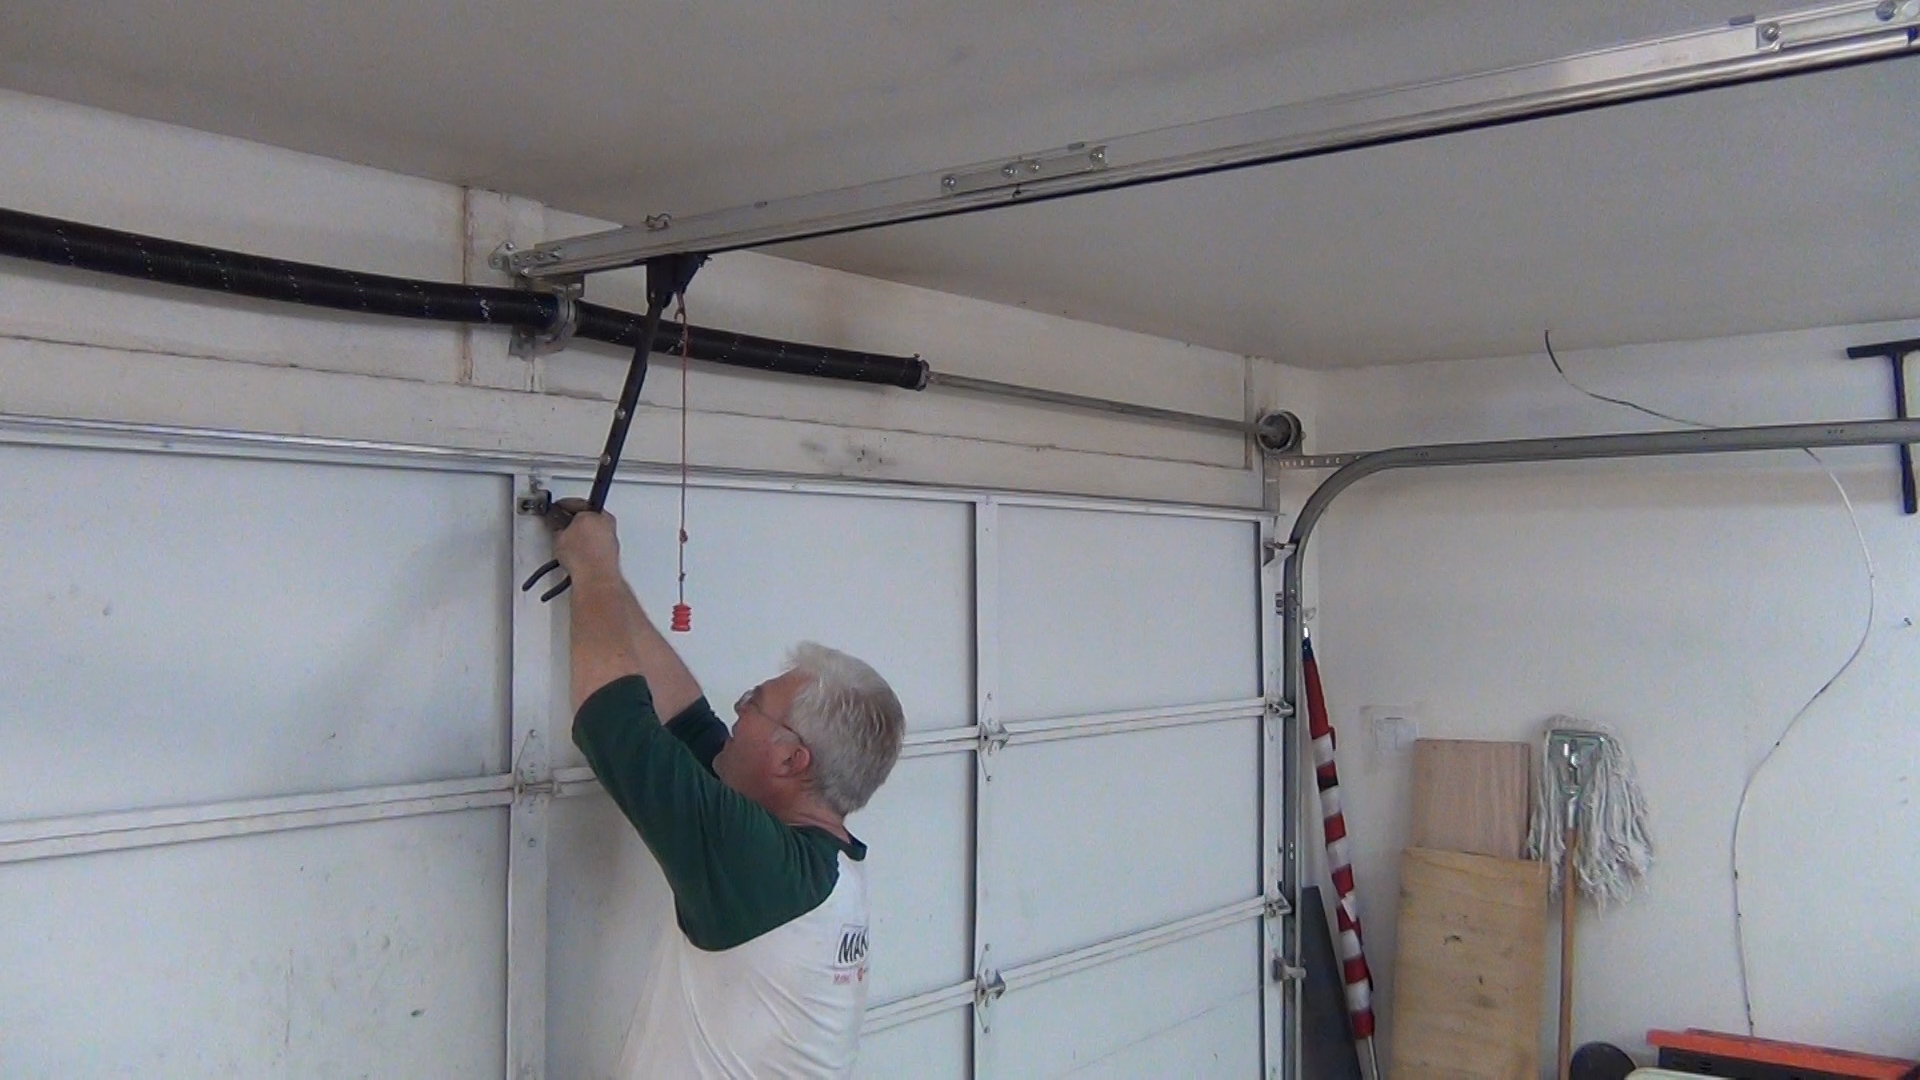 Le Meilleur Toddfun Com » Blog Archive » Garage Door Spring Replacement Ce Mois Ci